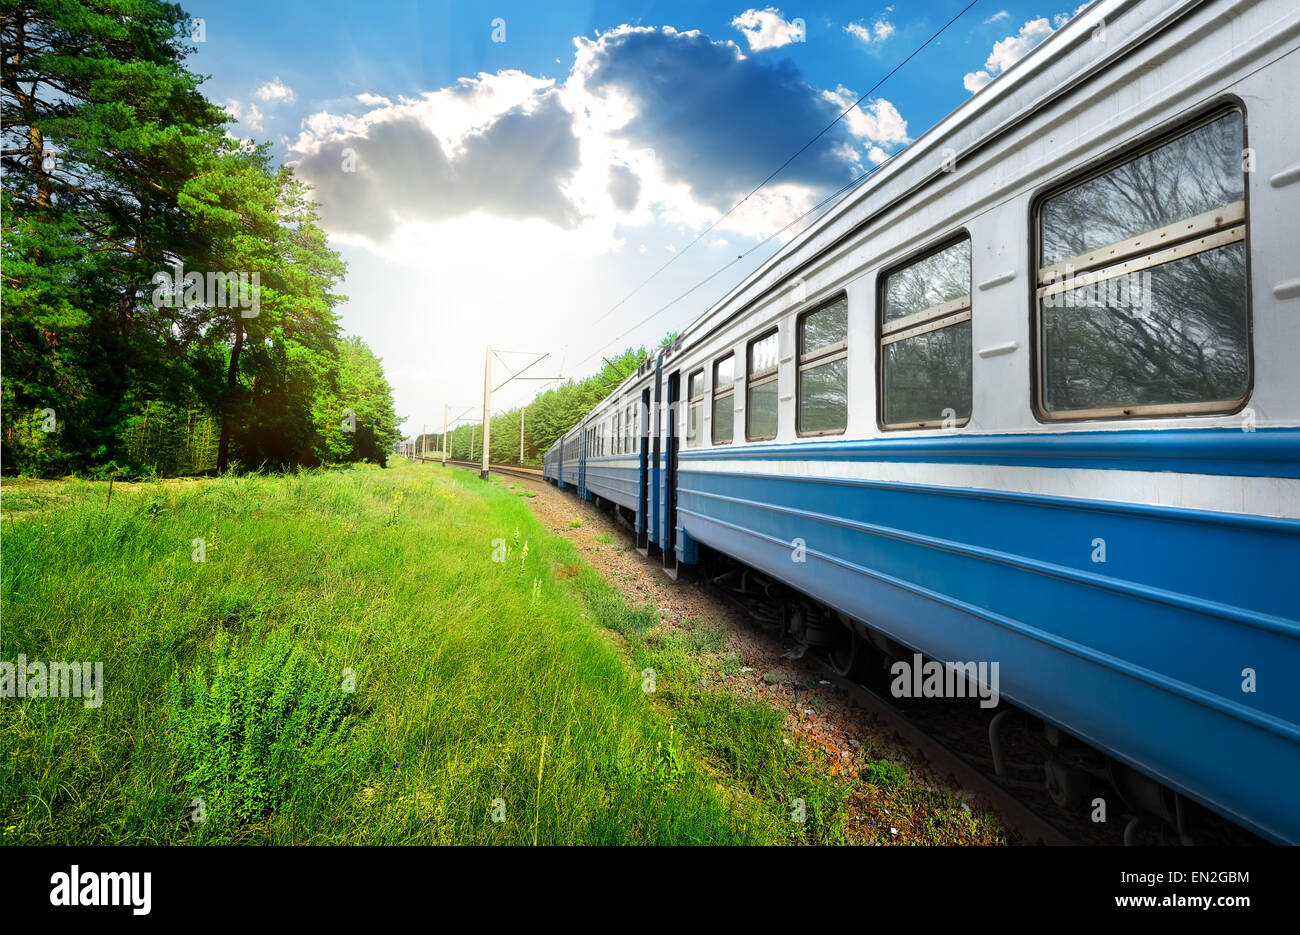 Train wagon and pine forest at sunny day - Stock Image